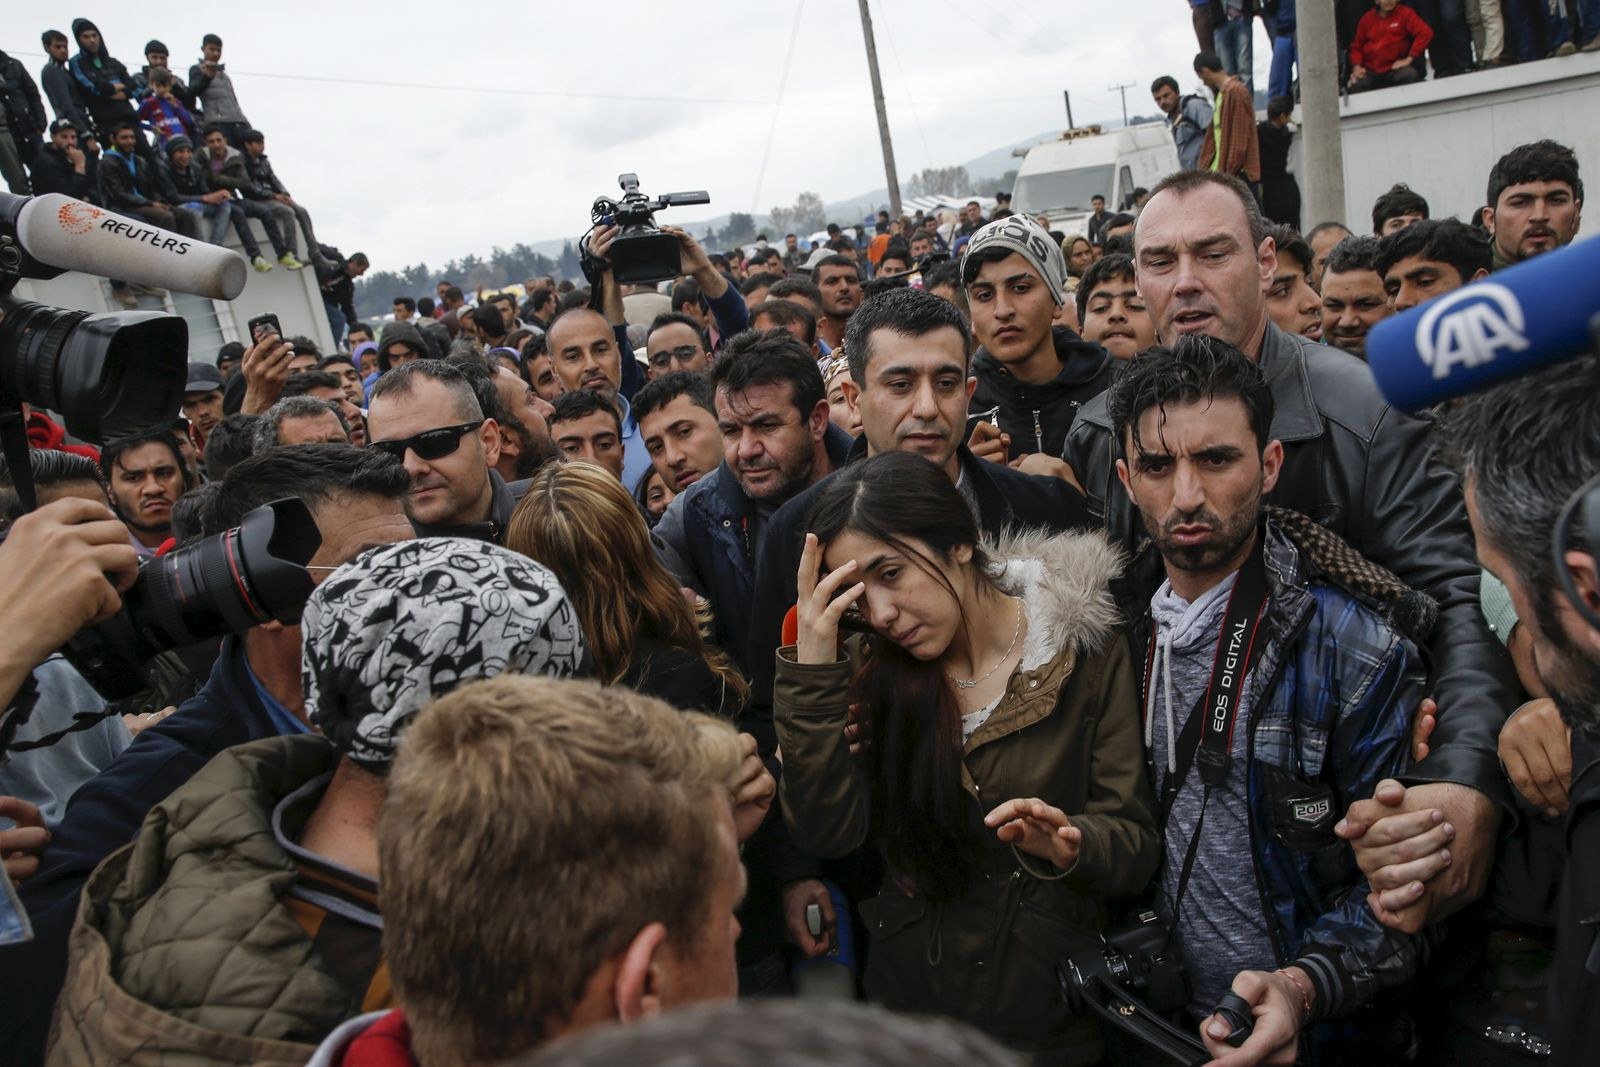 Taha, an Iraqi woman of the Yazidi faith who was abducted and held by the Islamic State for three months, walks through a makeshift camp for migrants and refugees at the Greek-Macedonian border near the village of Idomeni